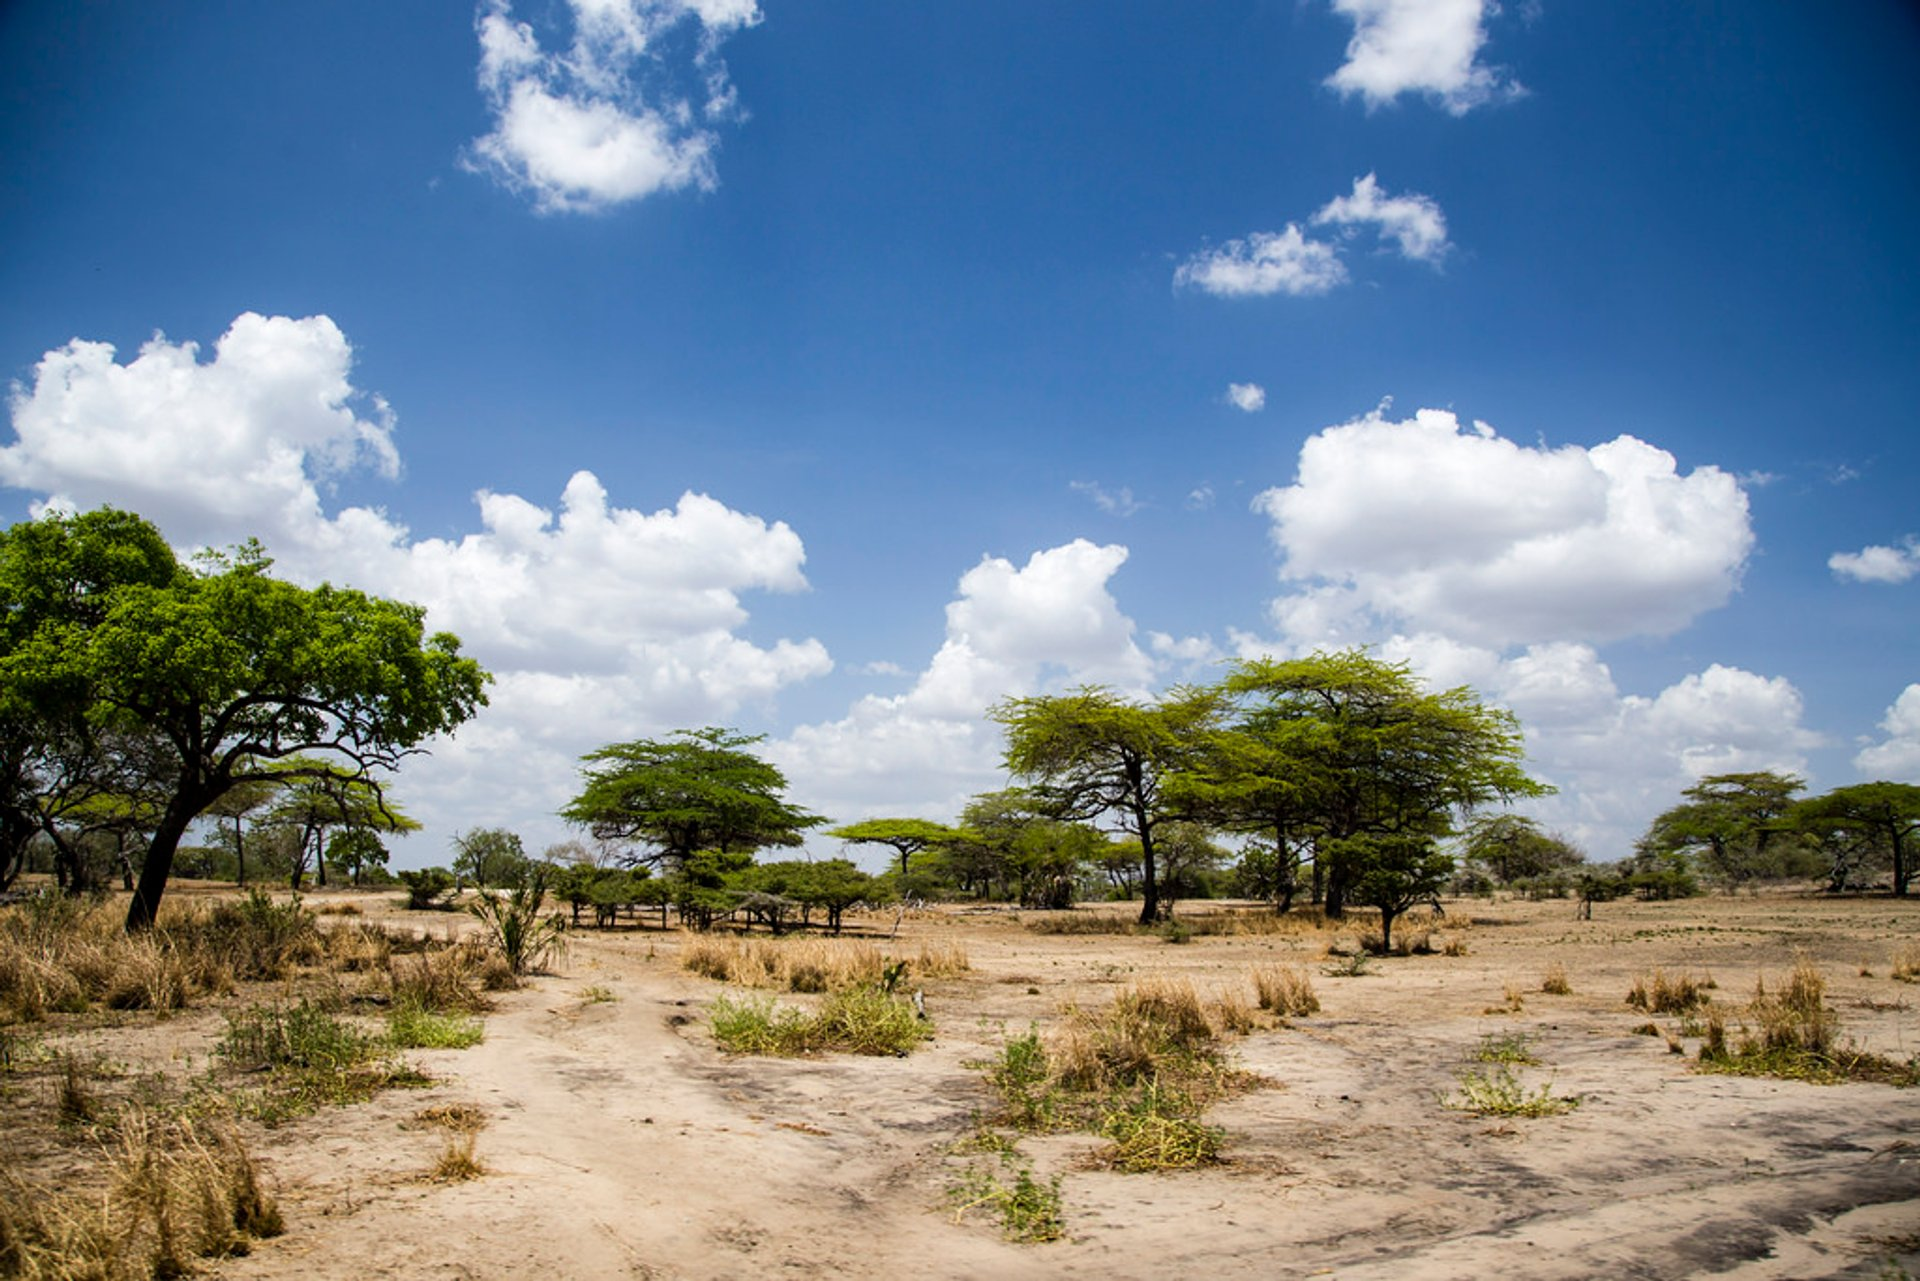 Short Dry Season in Tanzania 2019 - Best Time